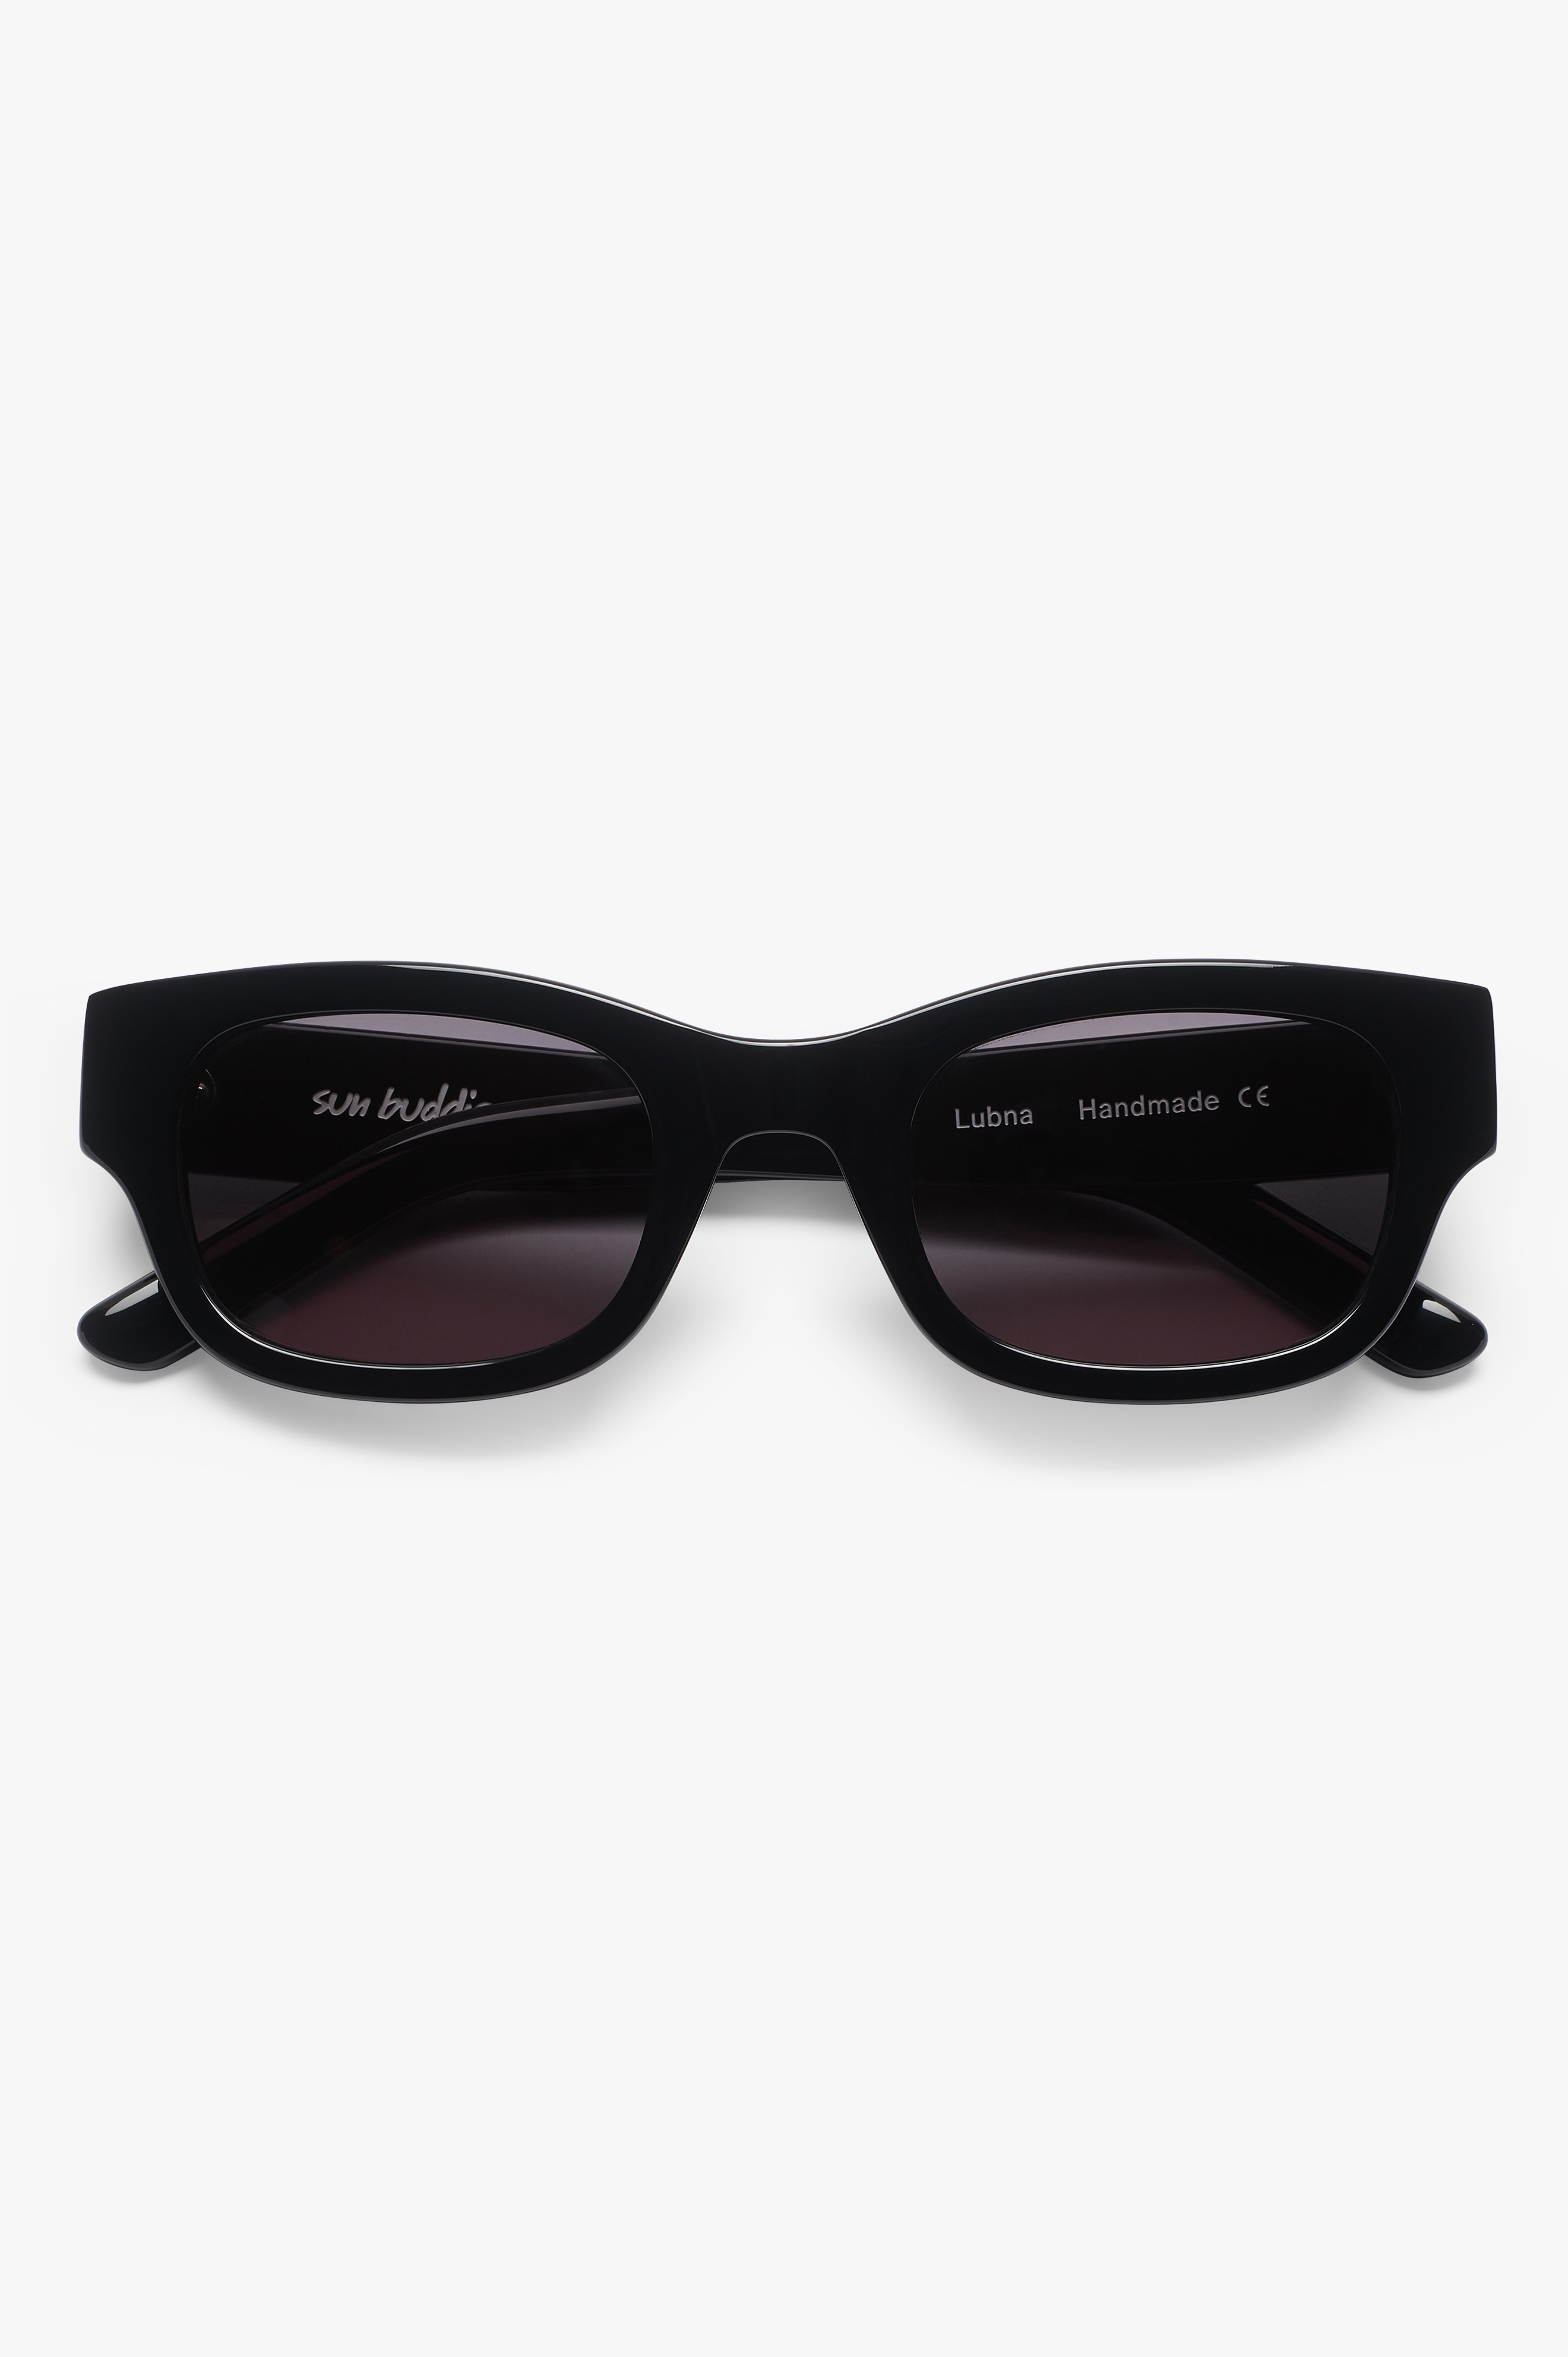 Lubna Sunglasses Black